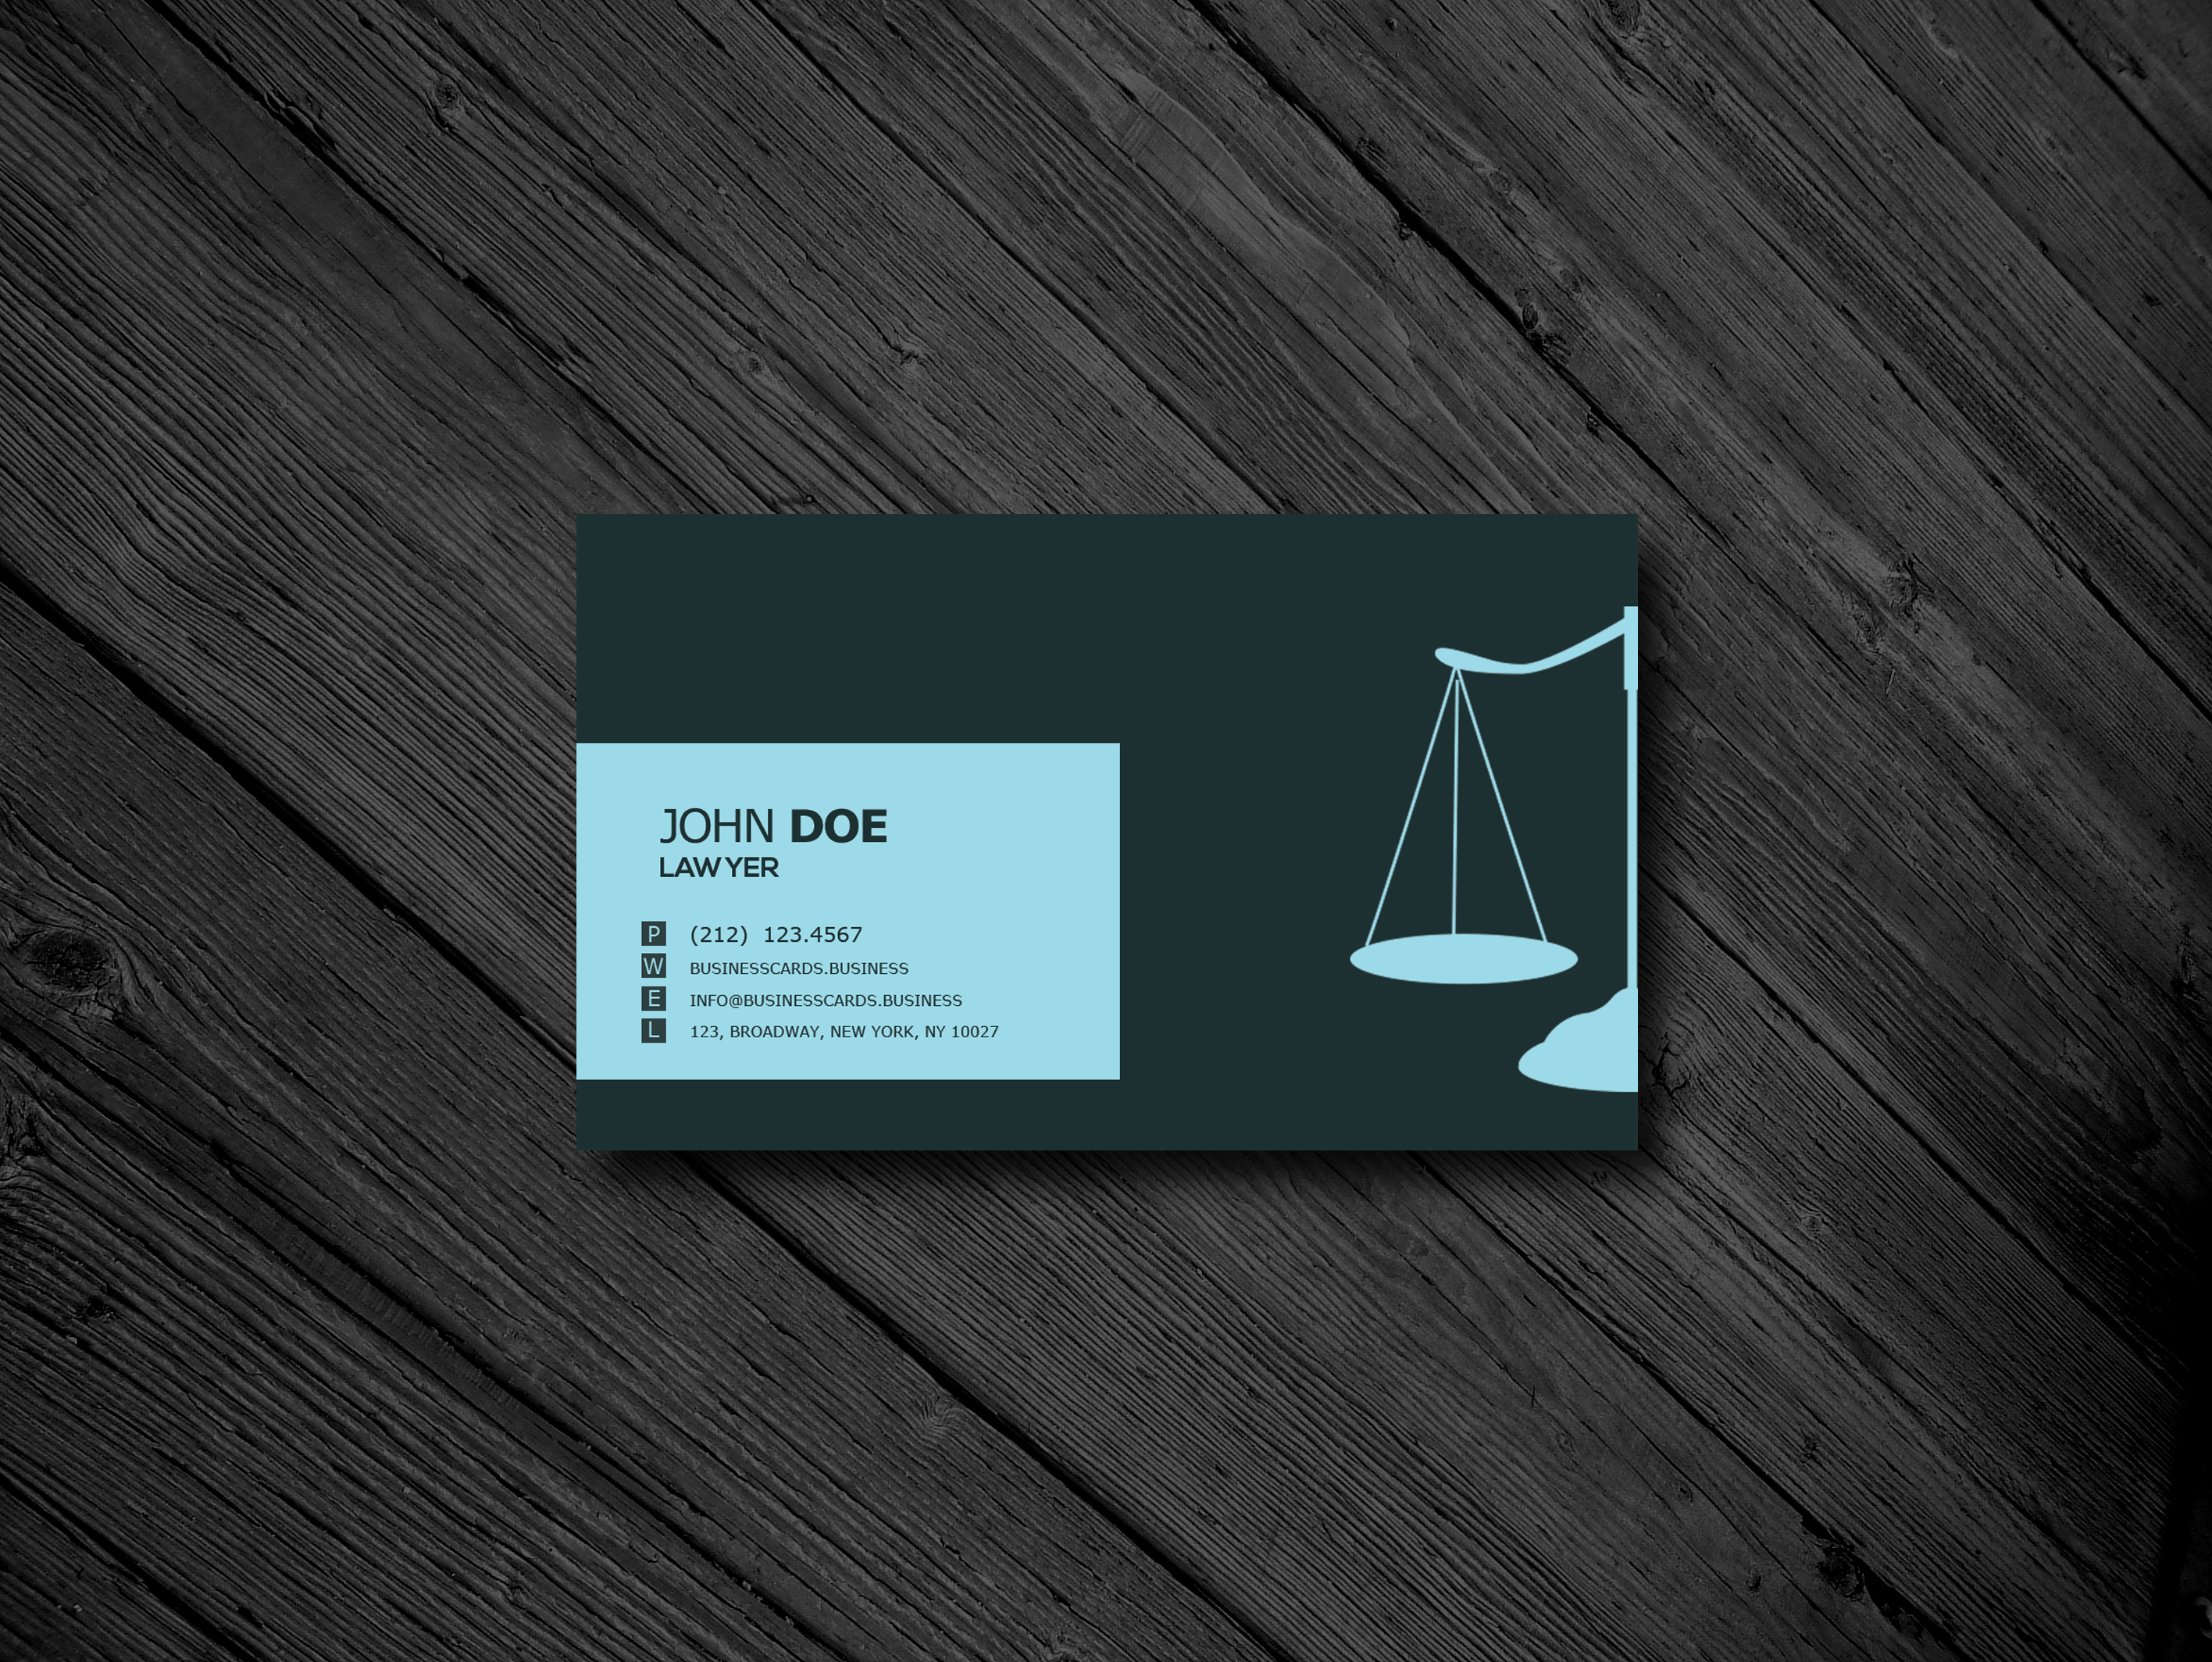 Free business card templates business cards templates free lawyer business card psd template wajeb Image collections